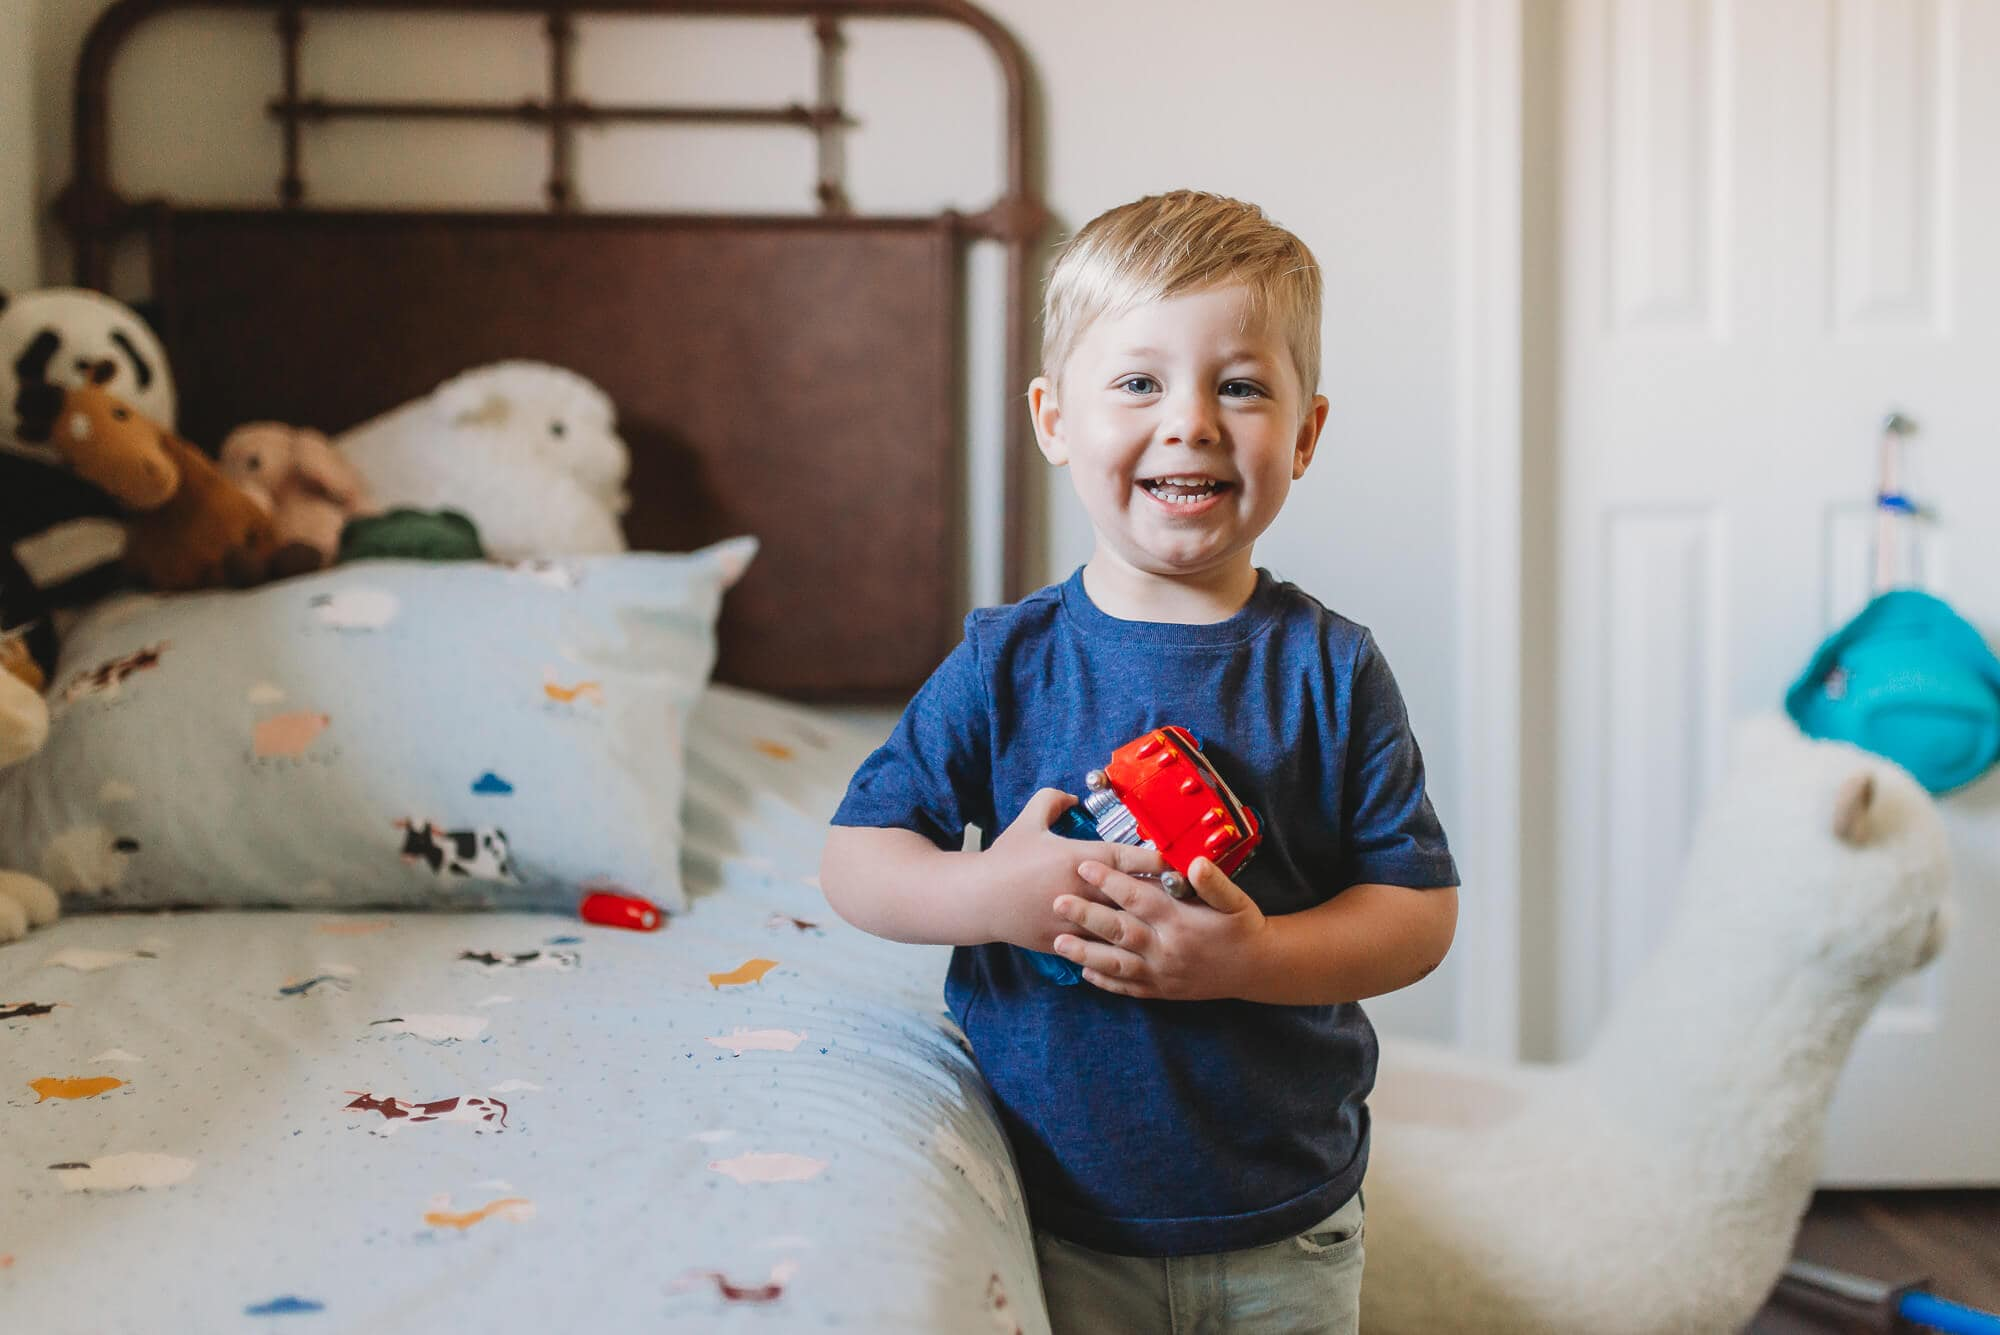 boy standing next to bed with toy car in hand